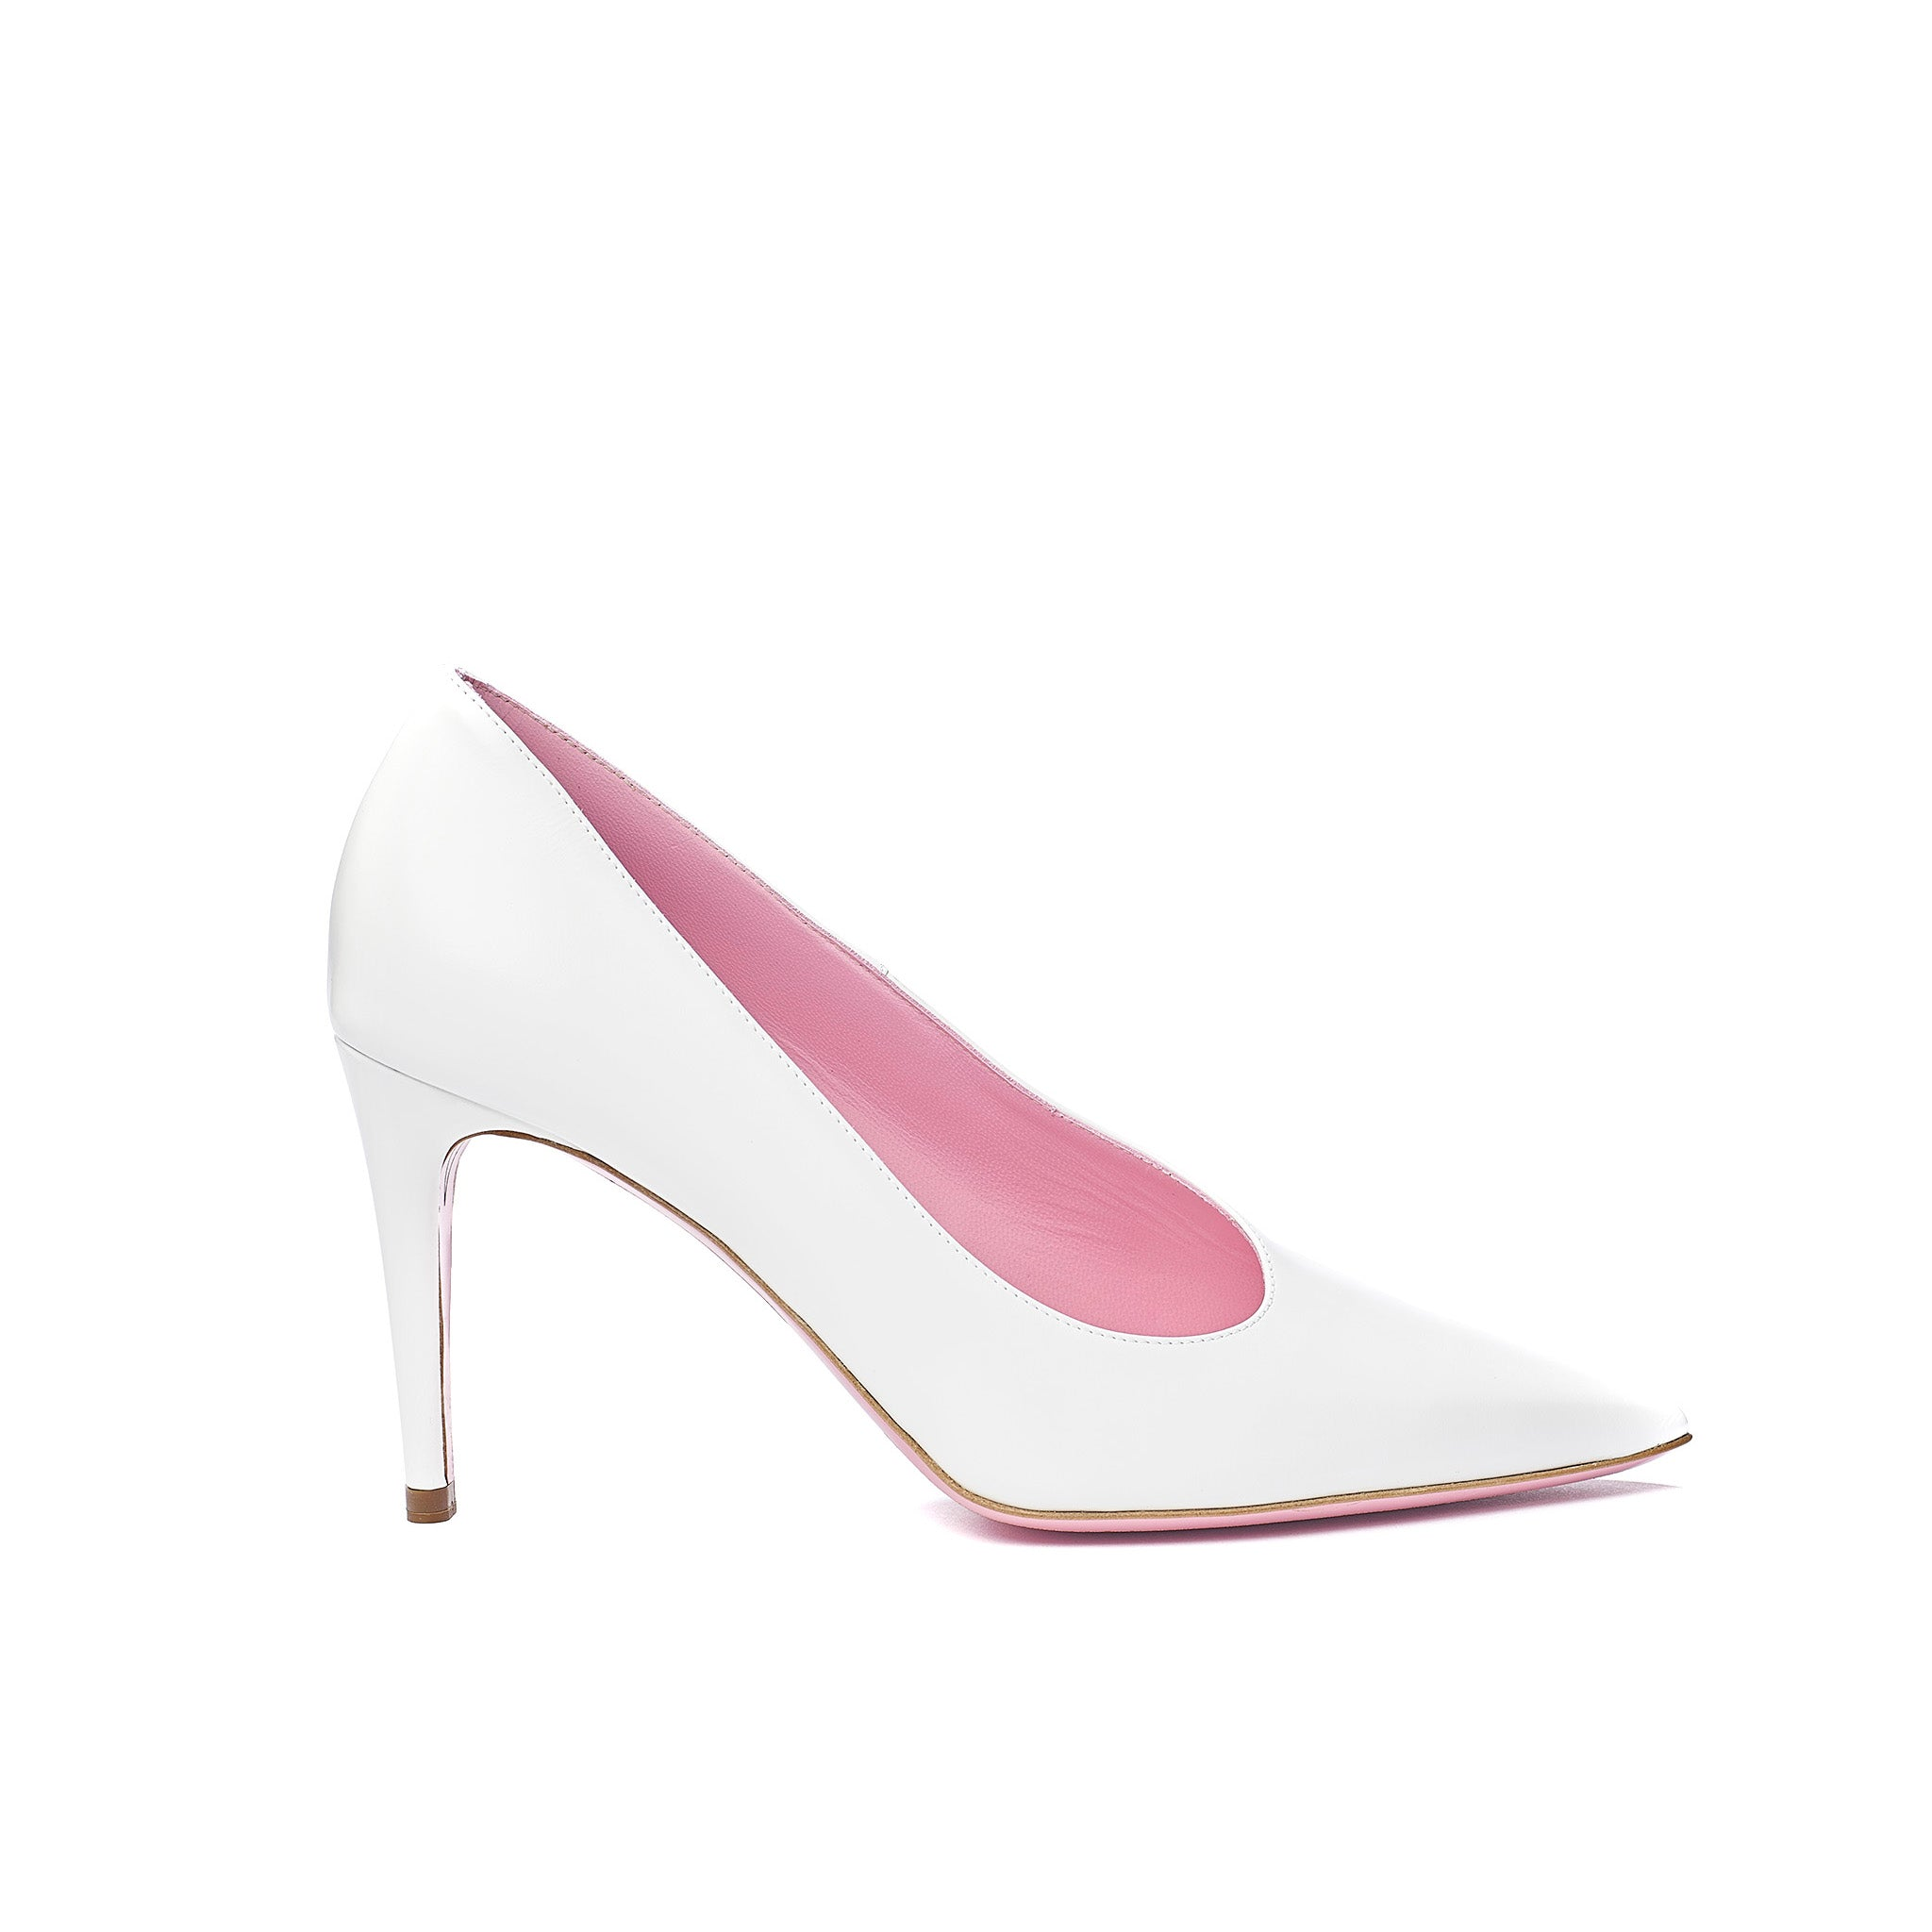 Phare Asymmetrical pump in chalk leather